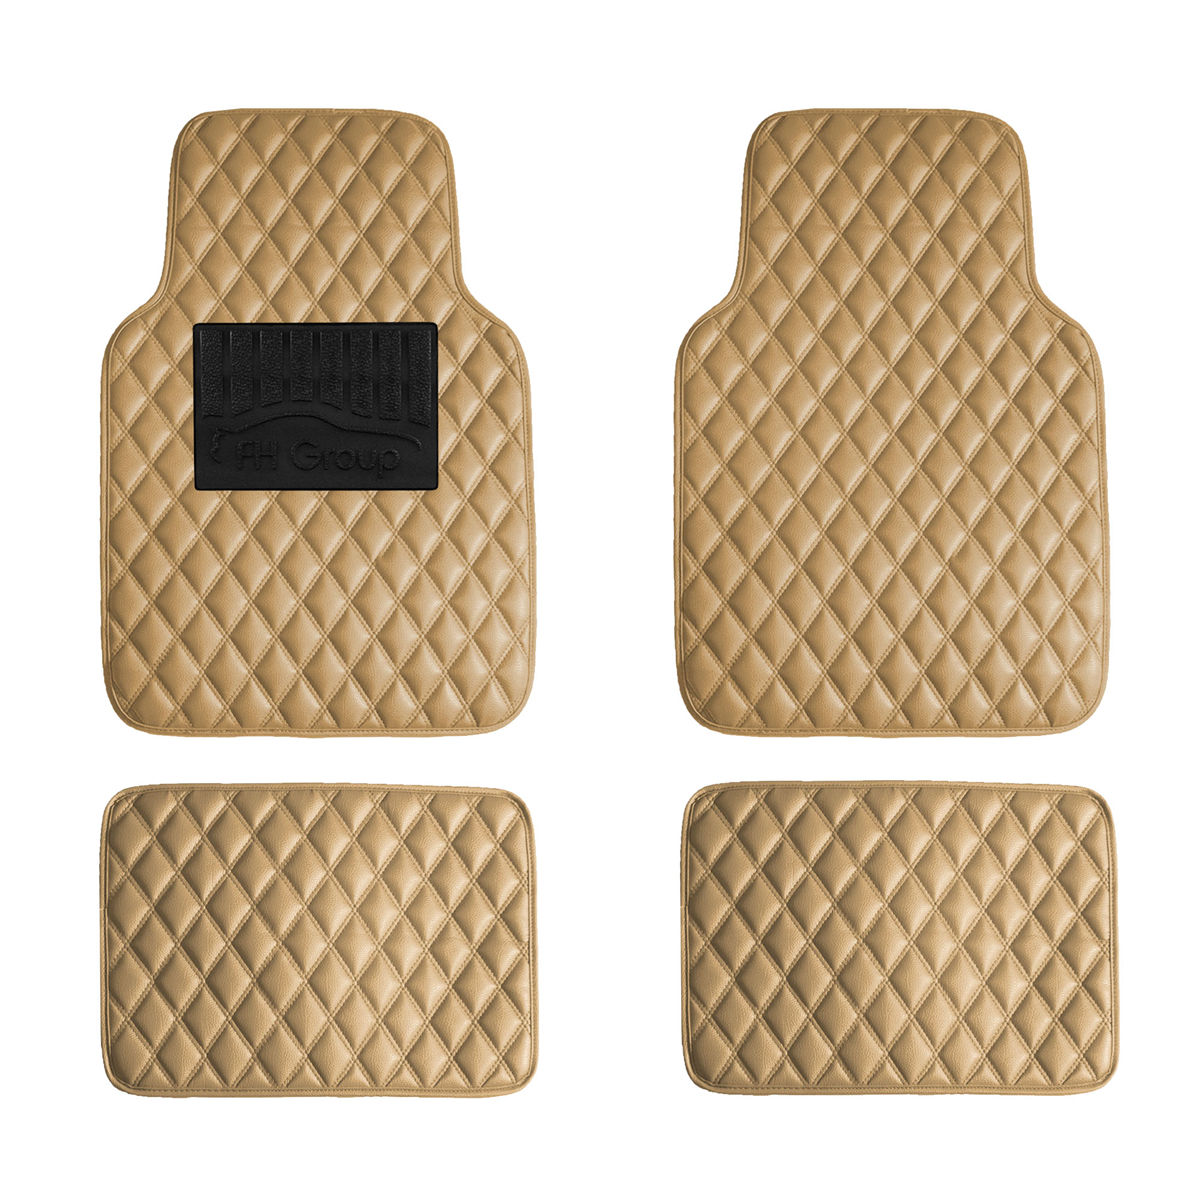 Luxury Universal All Seasons Heavy Duty Faux Leather Car Floor Mats Diamond Design - Beige F12002-Beige 01